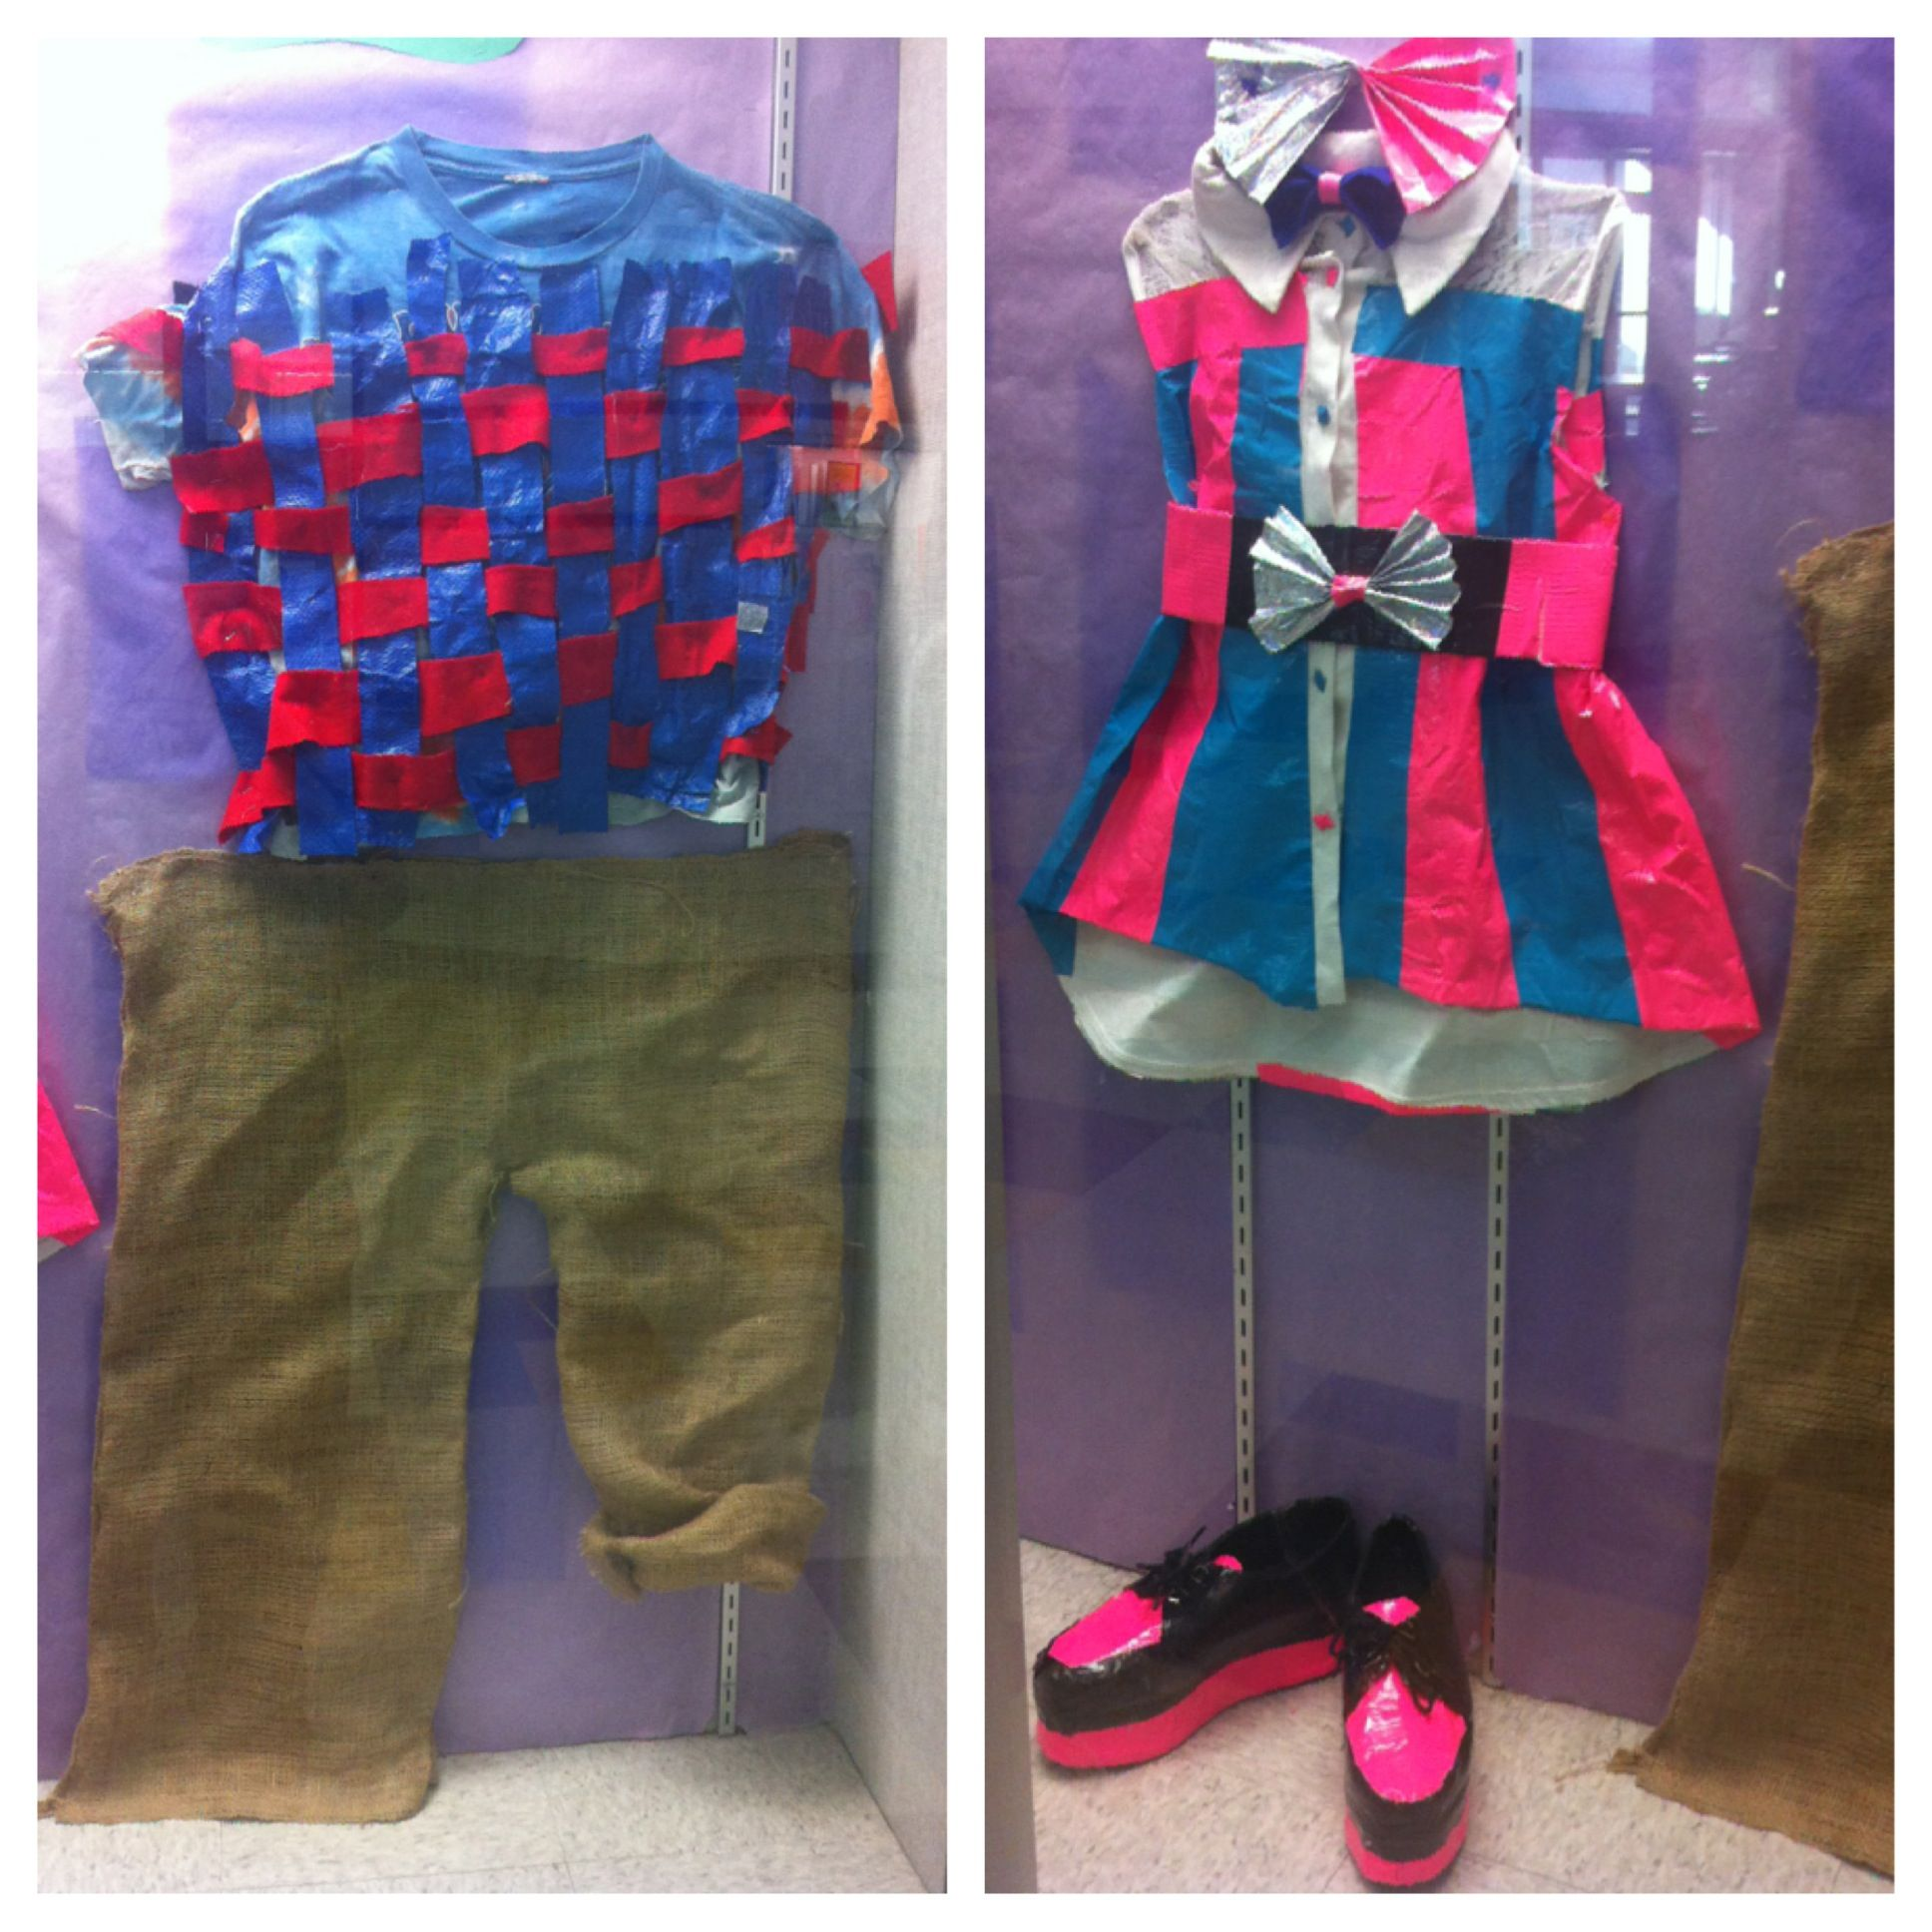 8th Grade Recycled Fashion Project